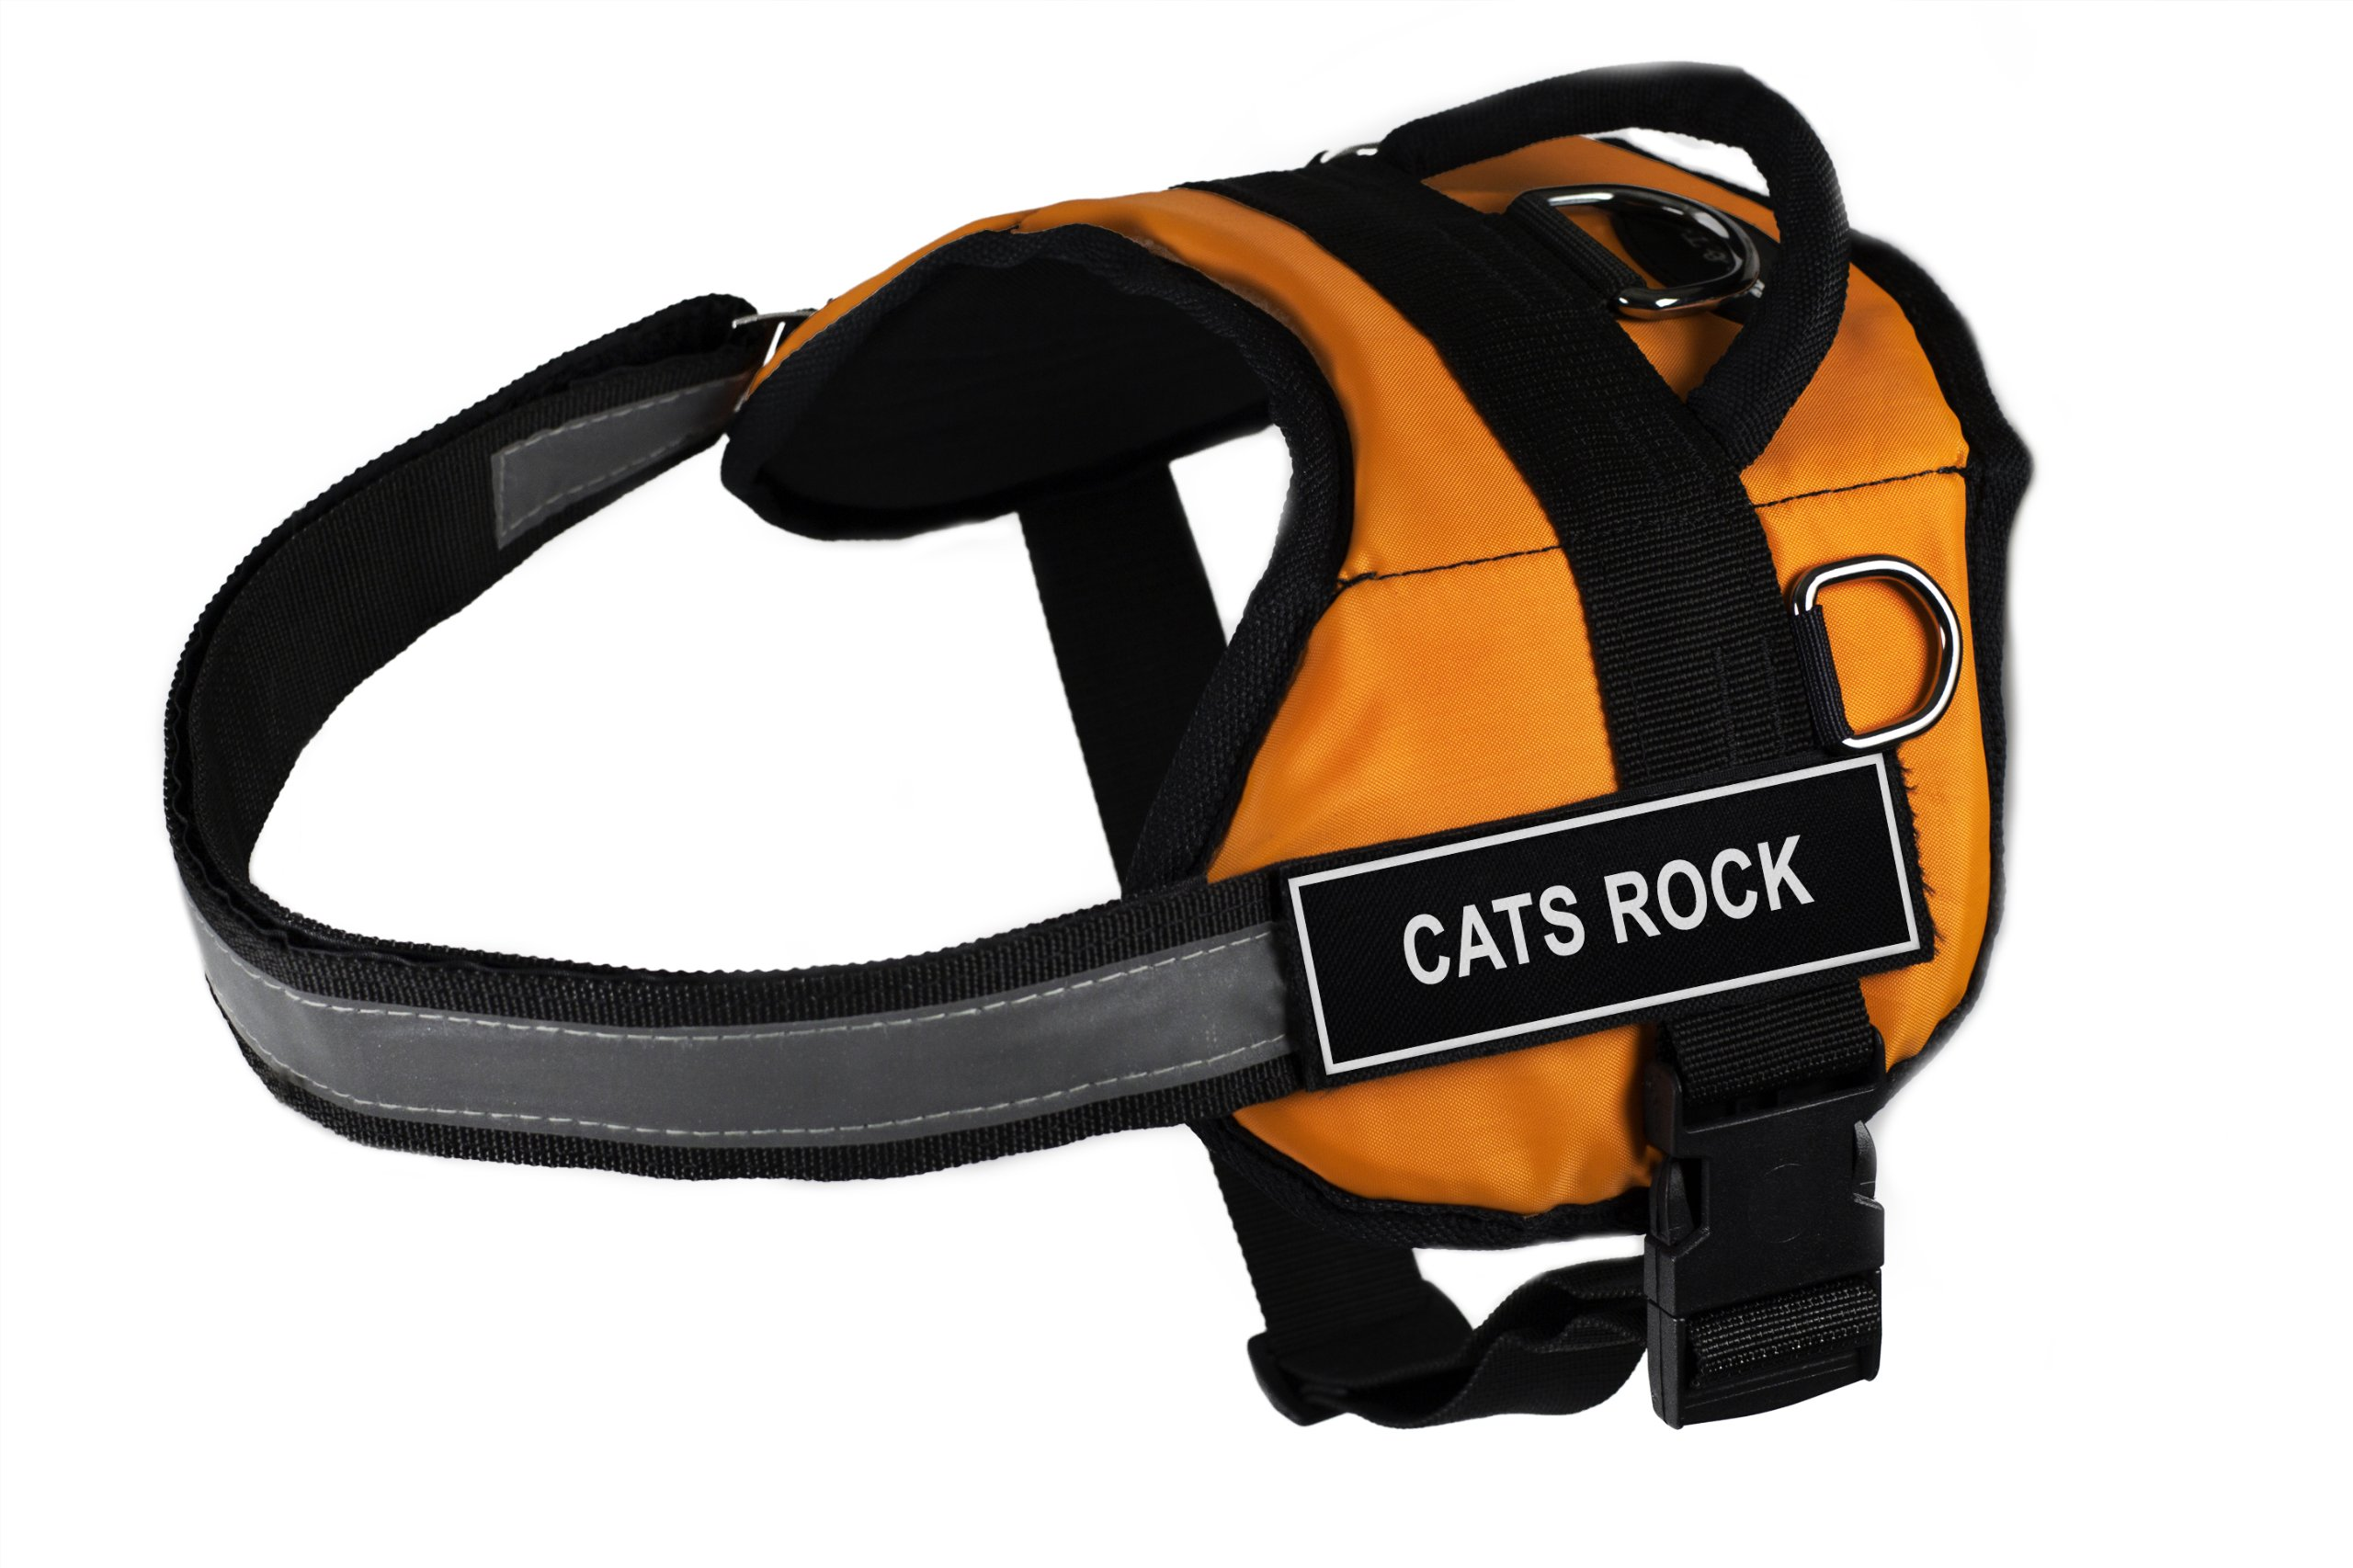 Dean & Tyler DT Works Fun Harness ''Cats Rock'' Pet Harness, Large, Fits Girth Size 34-Inch to 47-Inch, Orange/Black